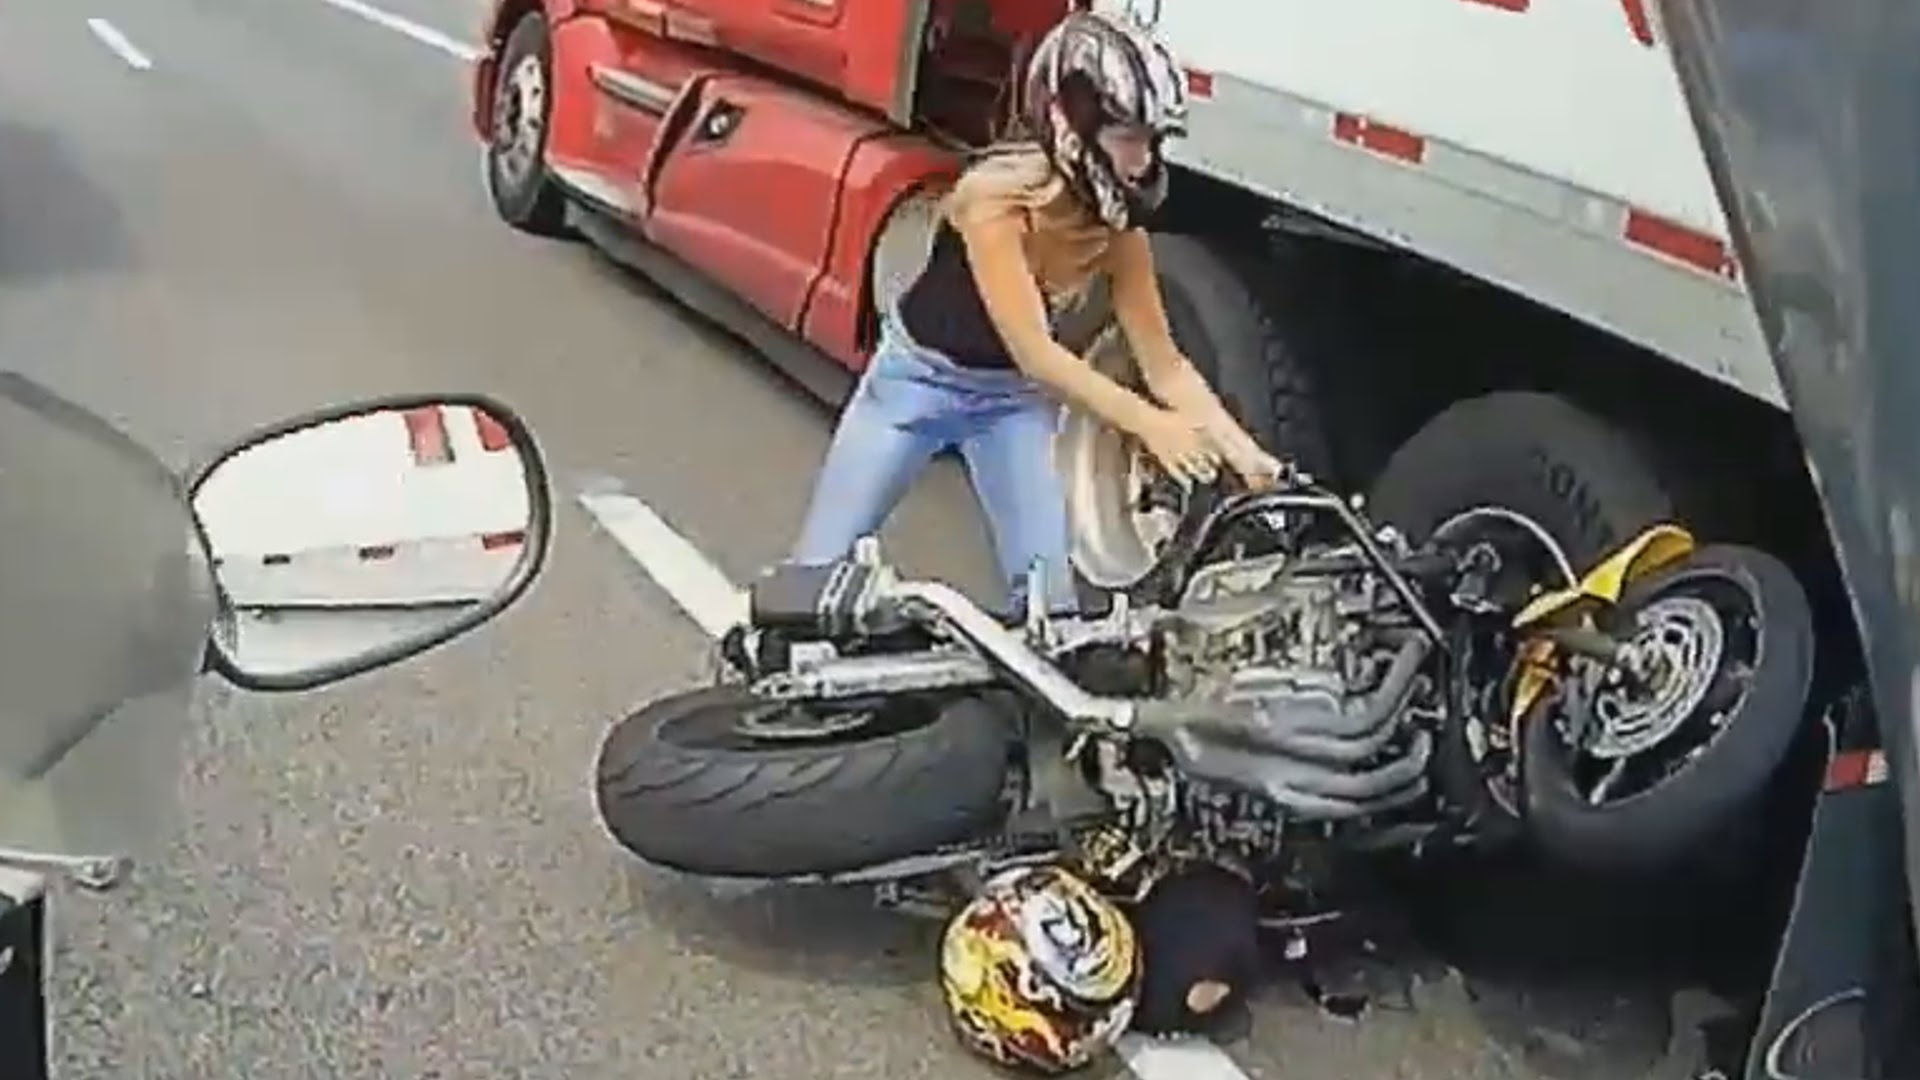 INSANE ACCIDENT: Motorcyclist Crashes & Gets Run Over By A Semi ...